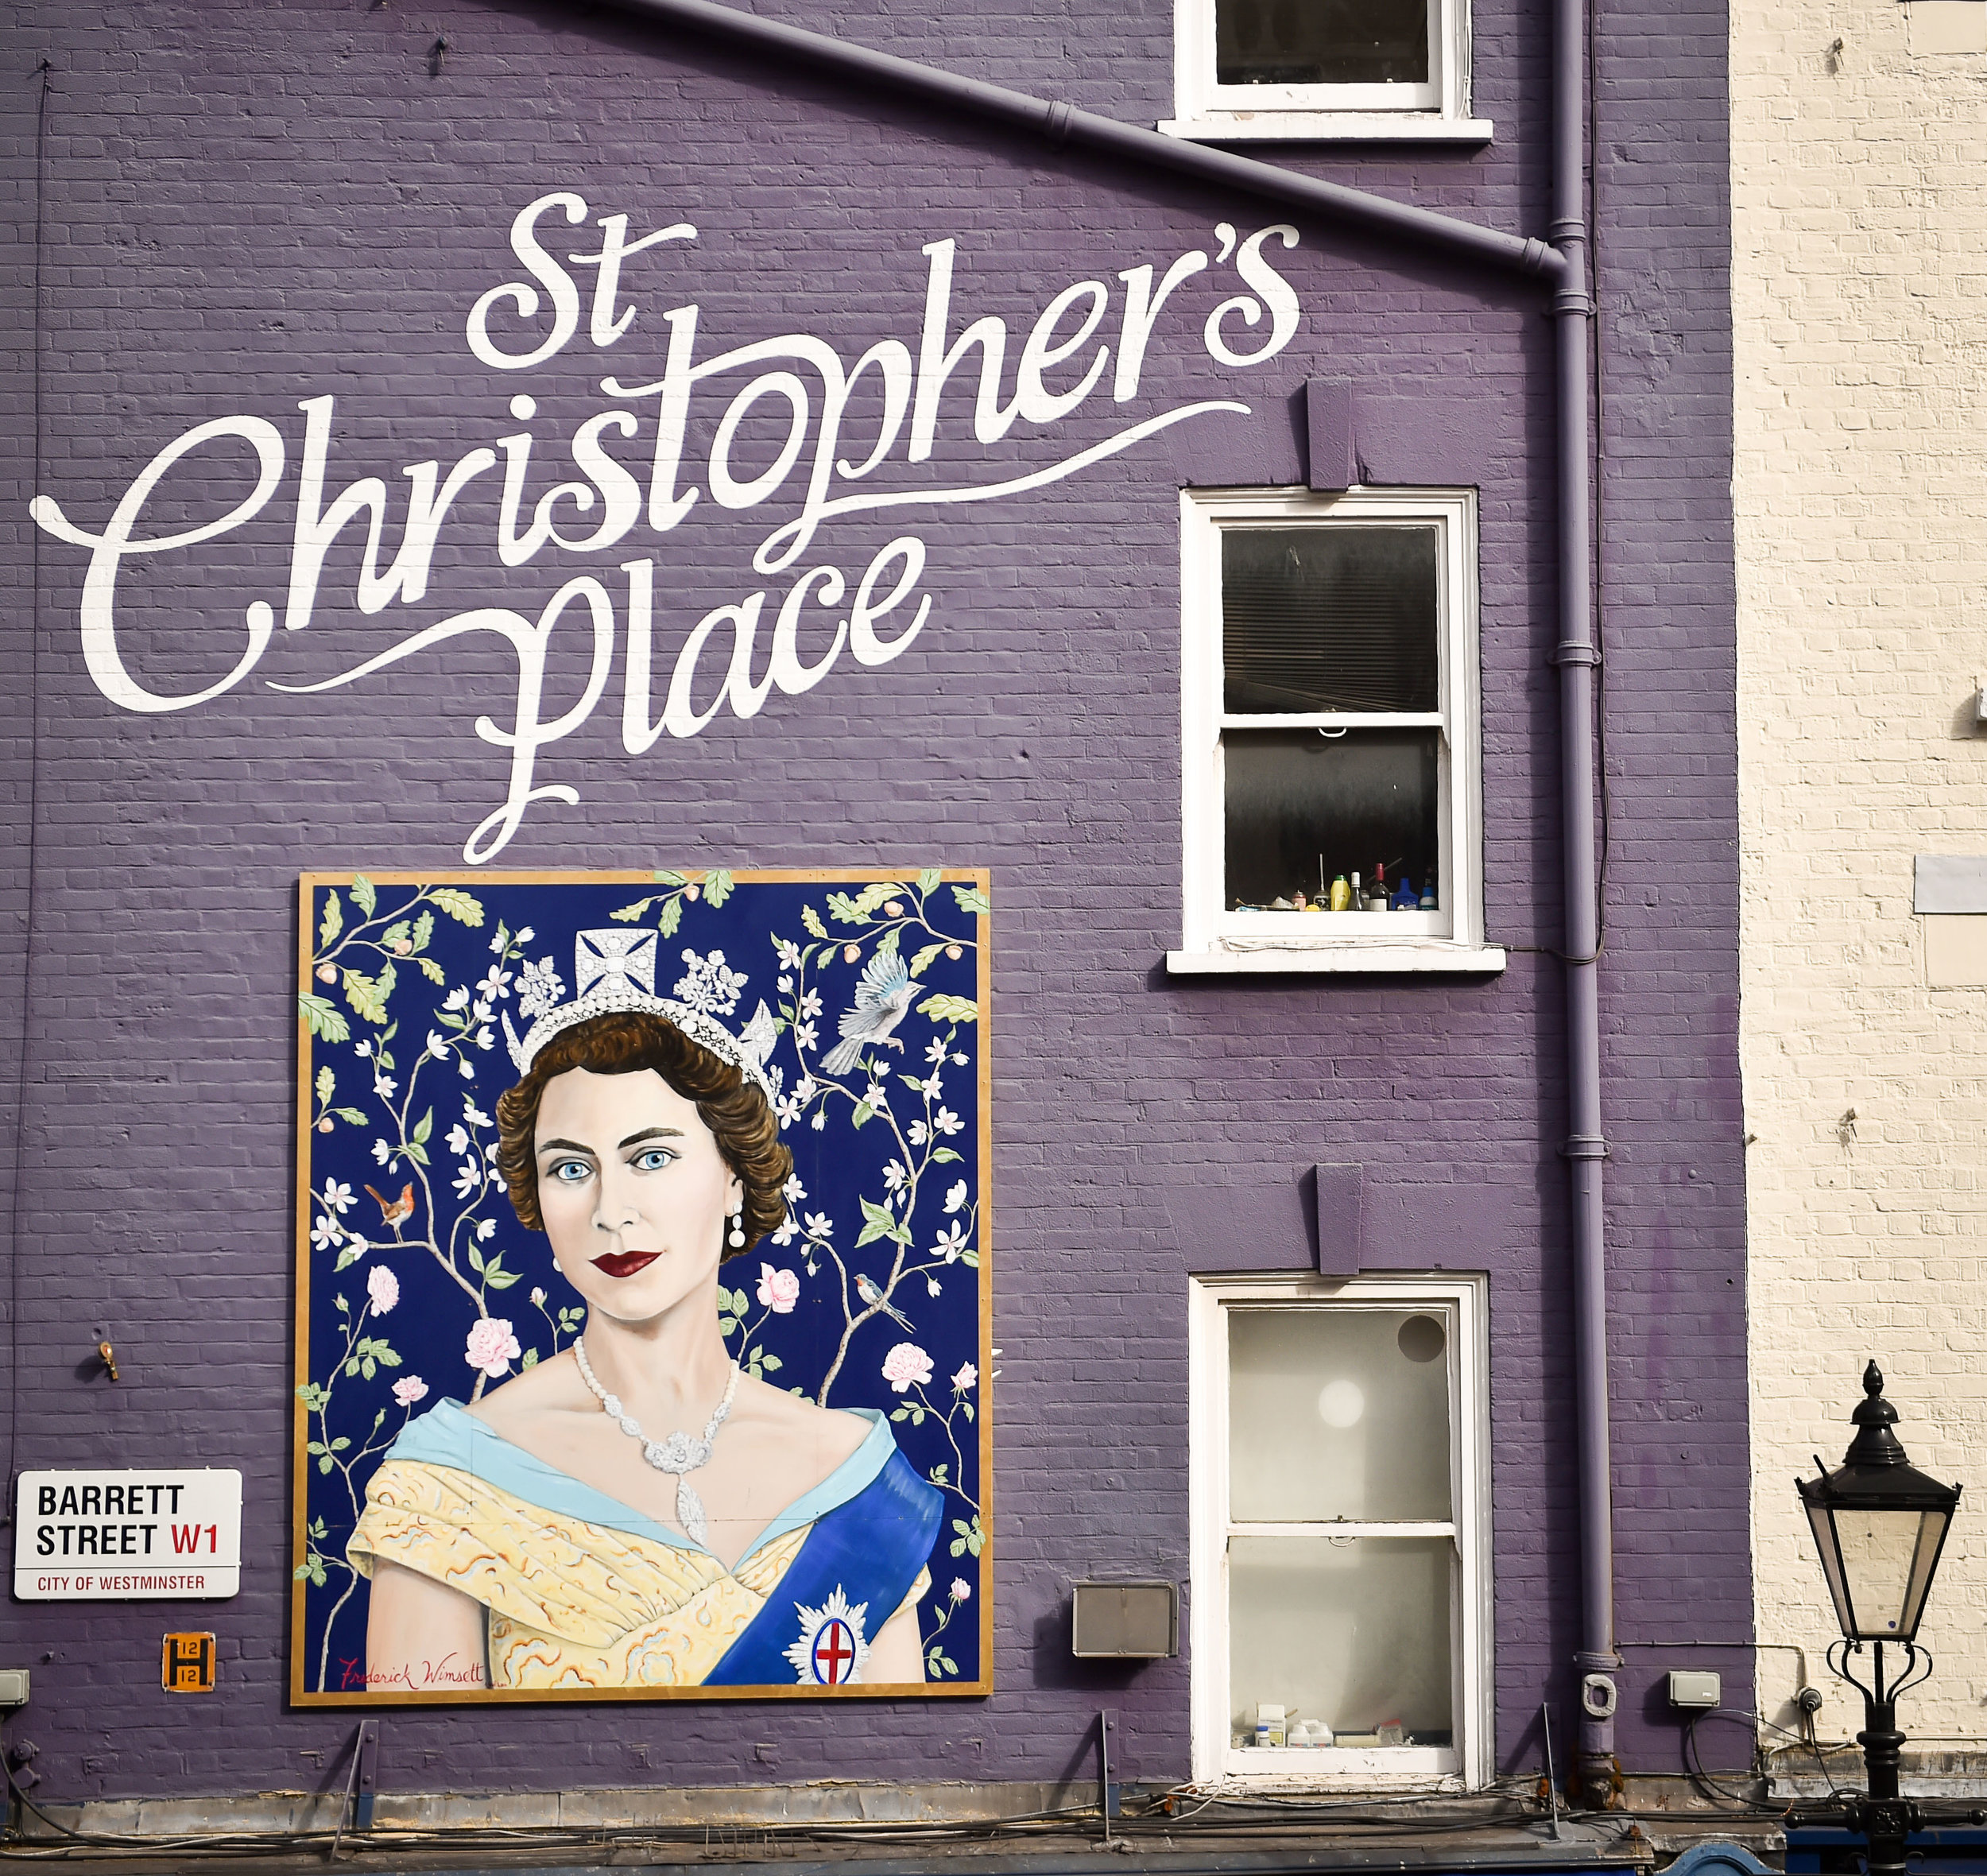 Frederick+Wimsett+-+murals+and+artistic+design+-+other+projects+The+Queen+at+St+Christophers+place+3 (1).jpg